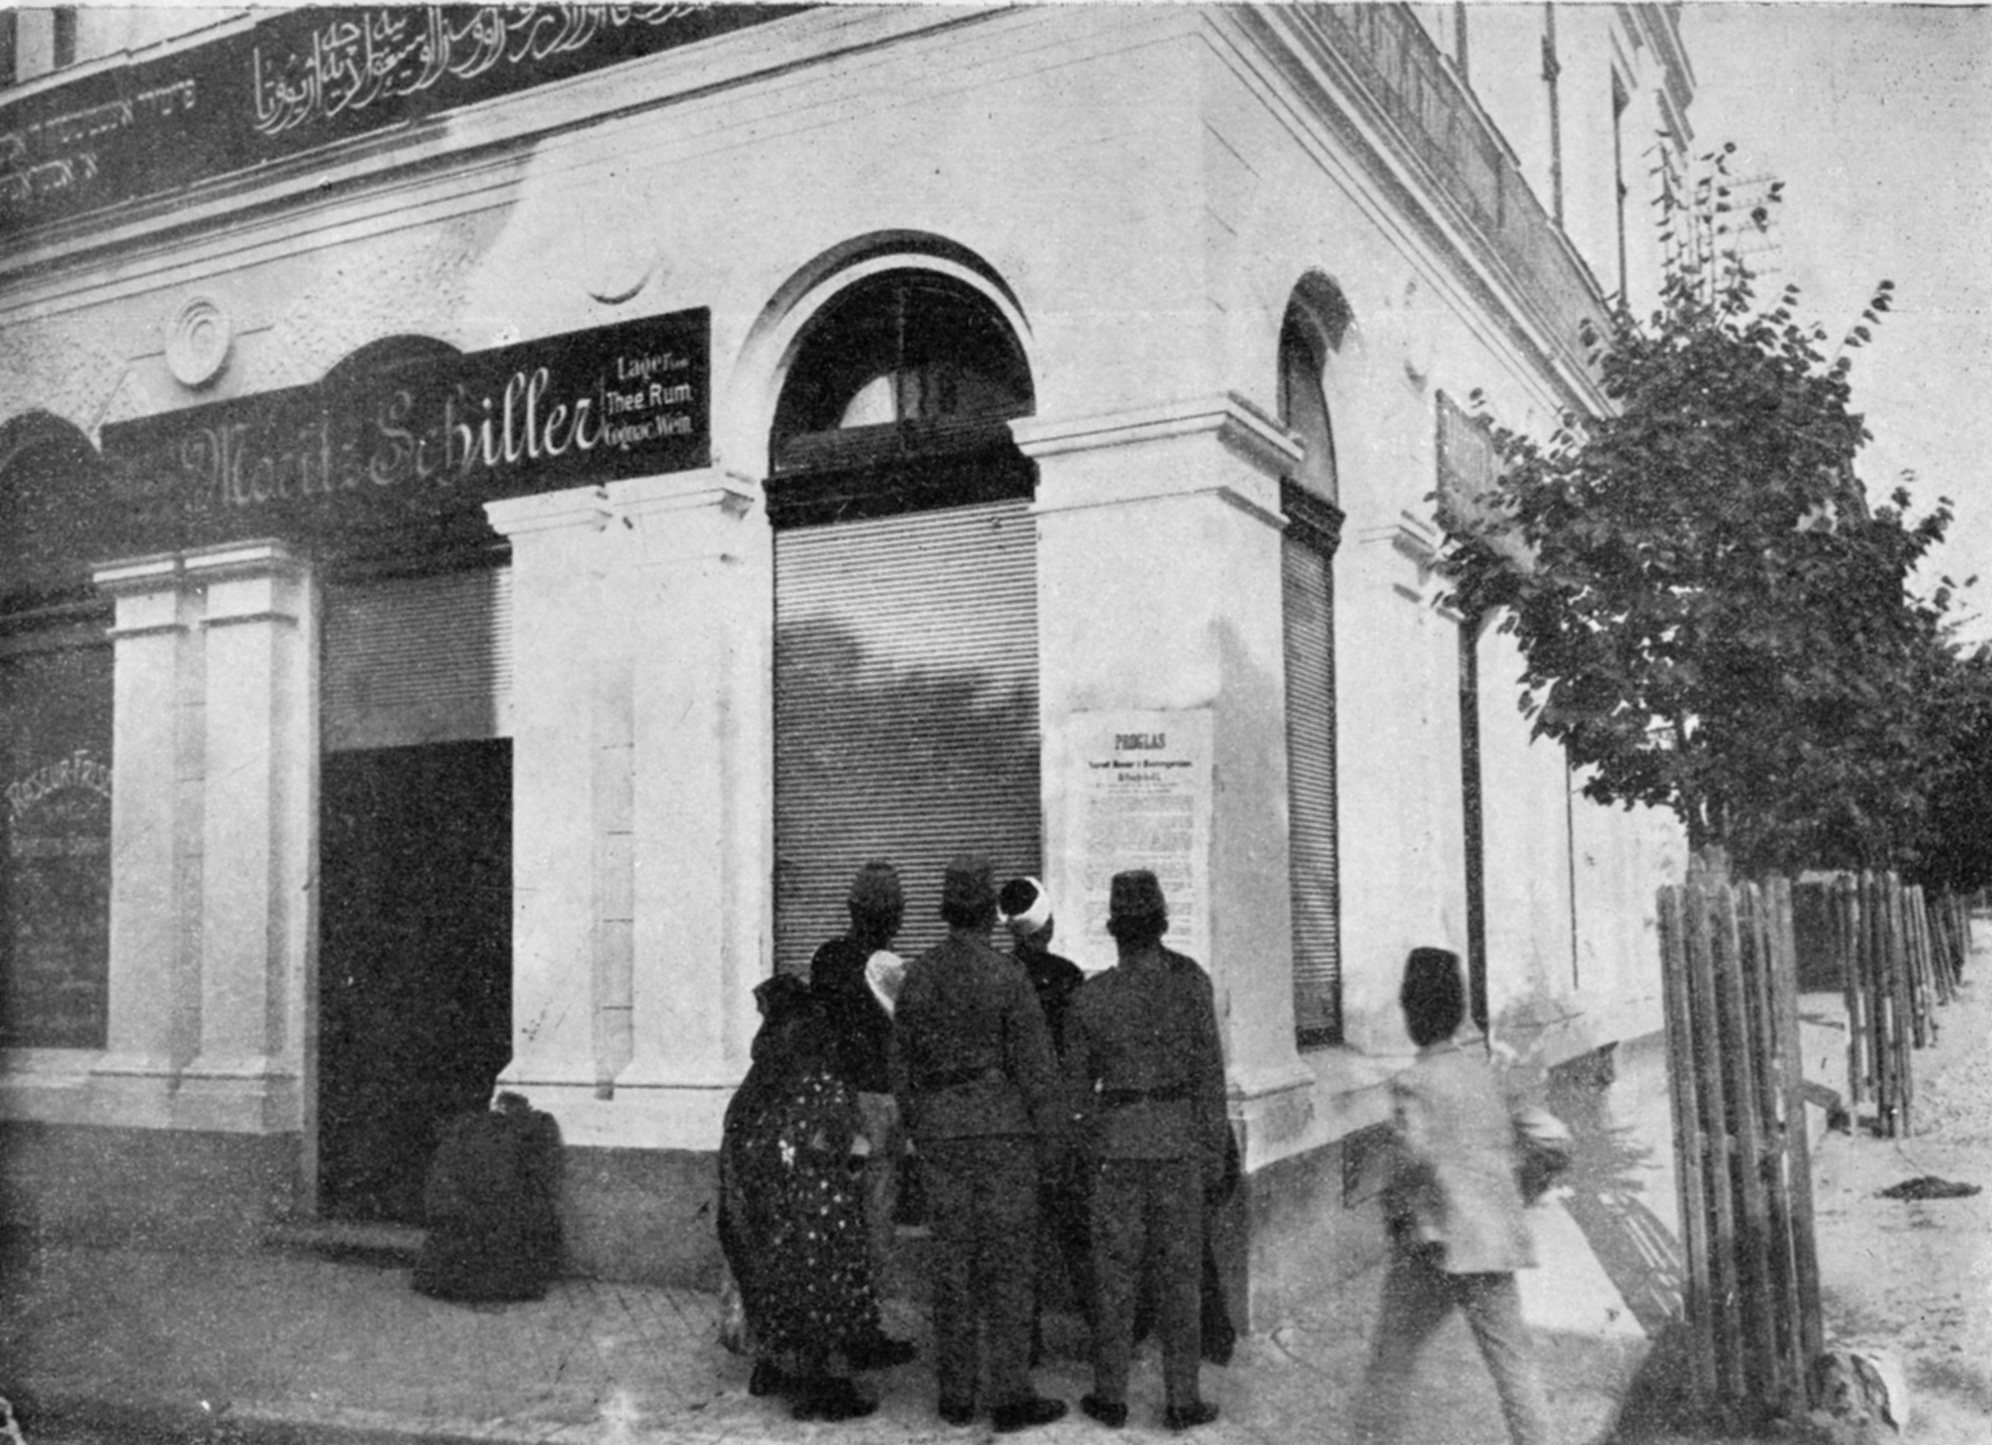 Assassination of Franz Ferdinand - Moritz Schiller's café.